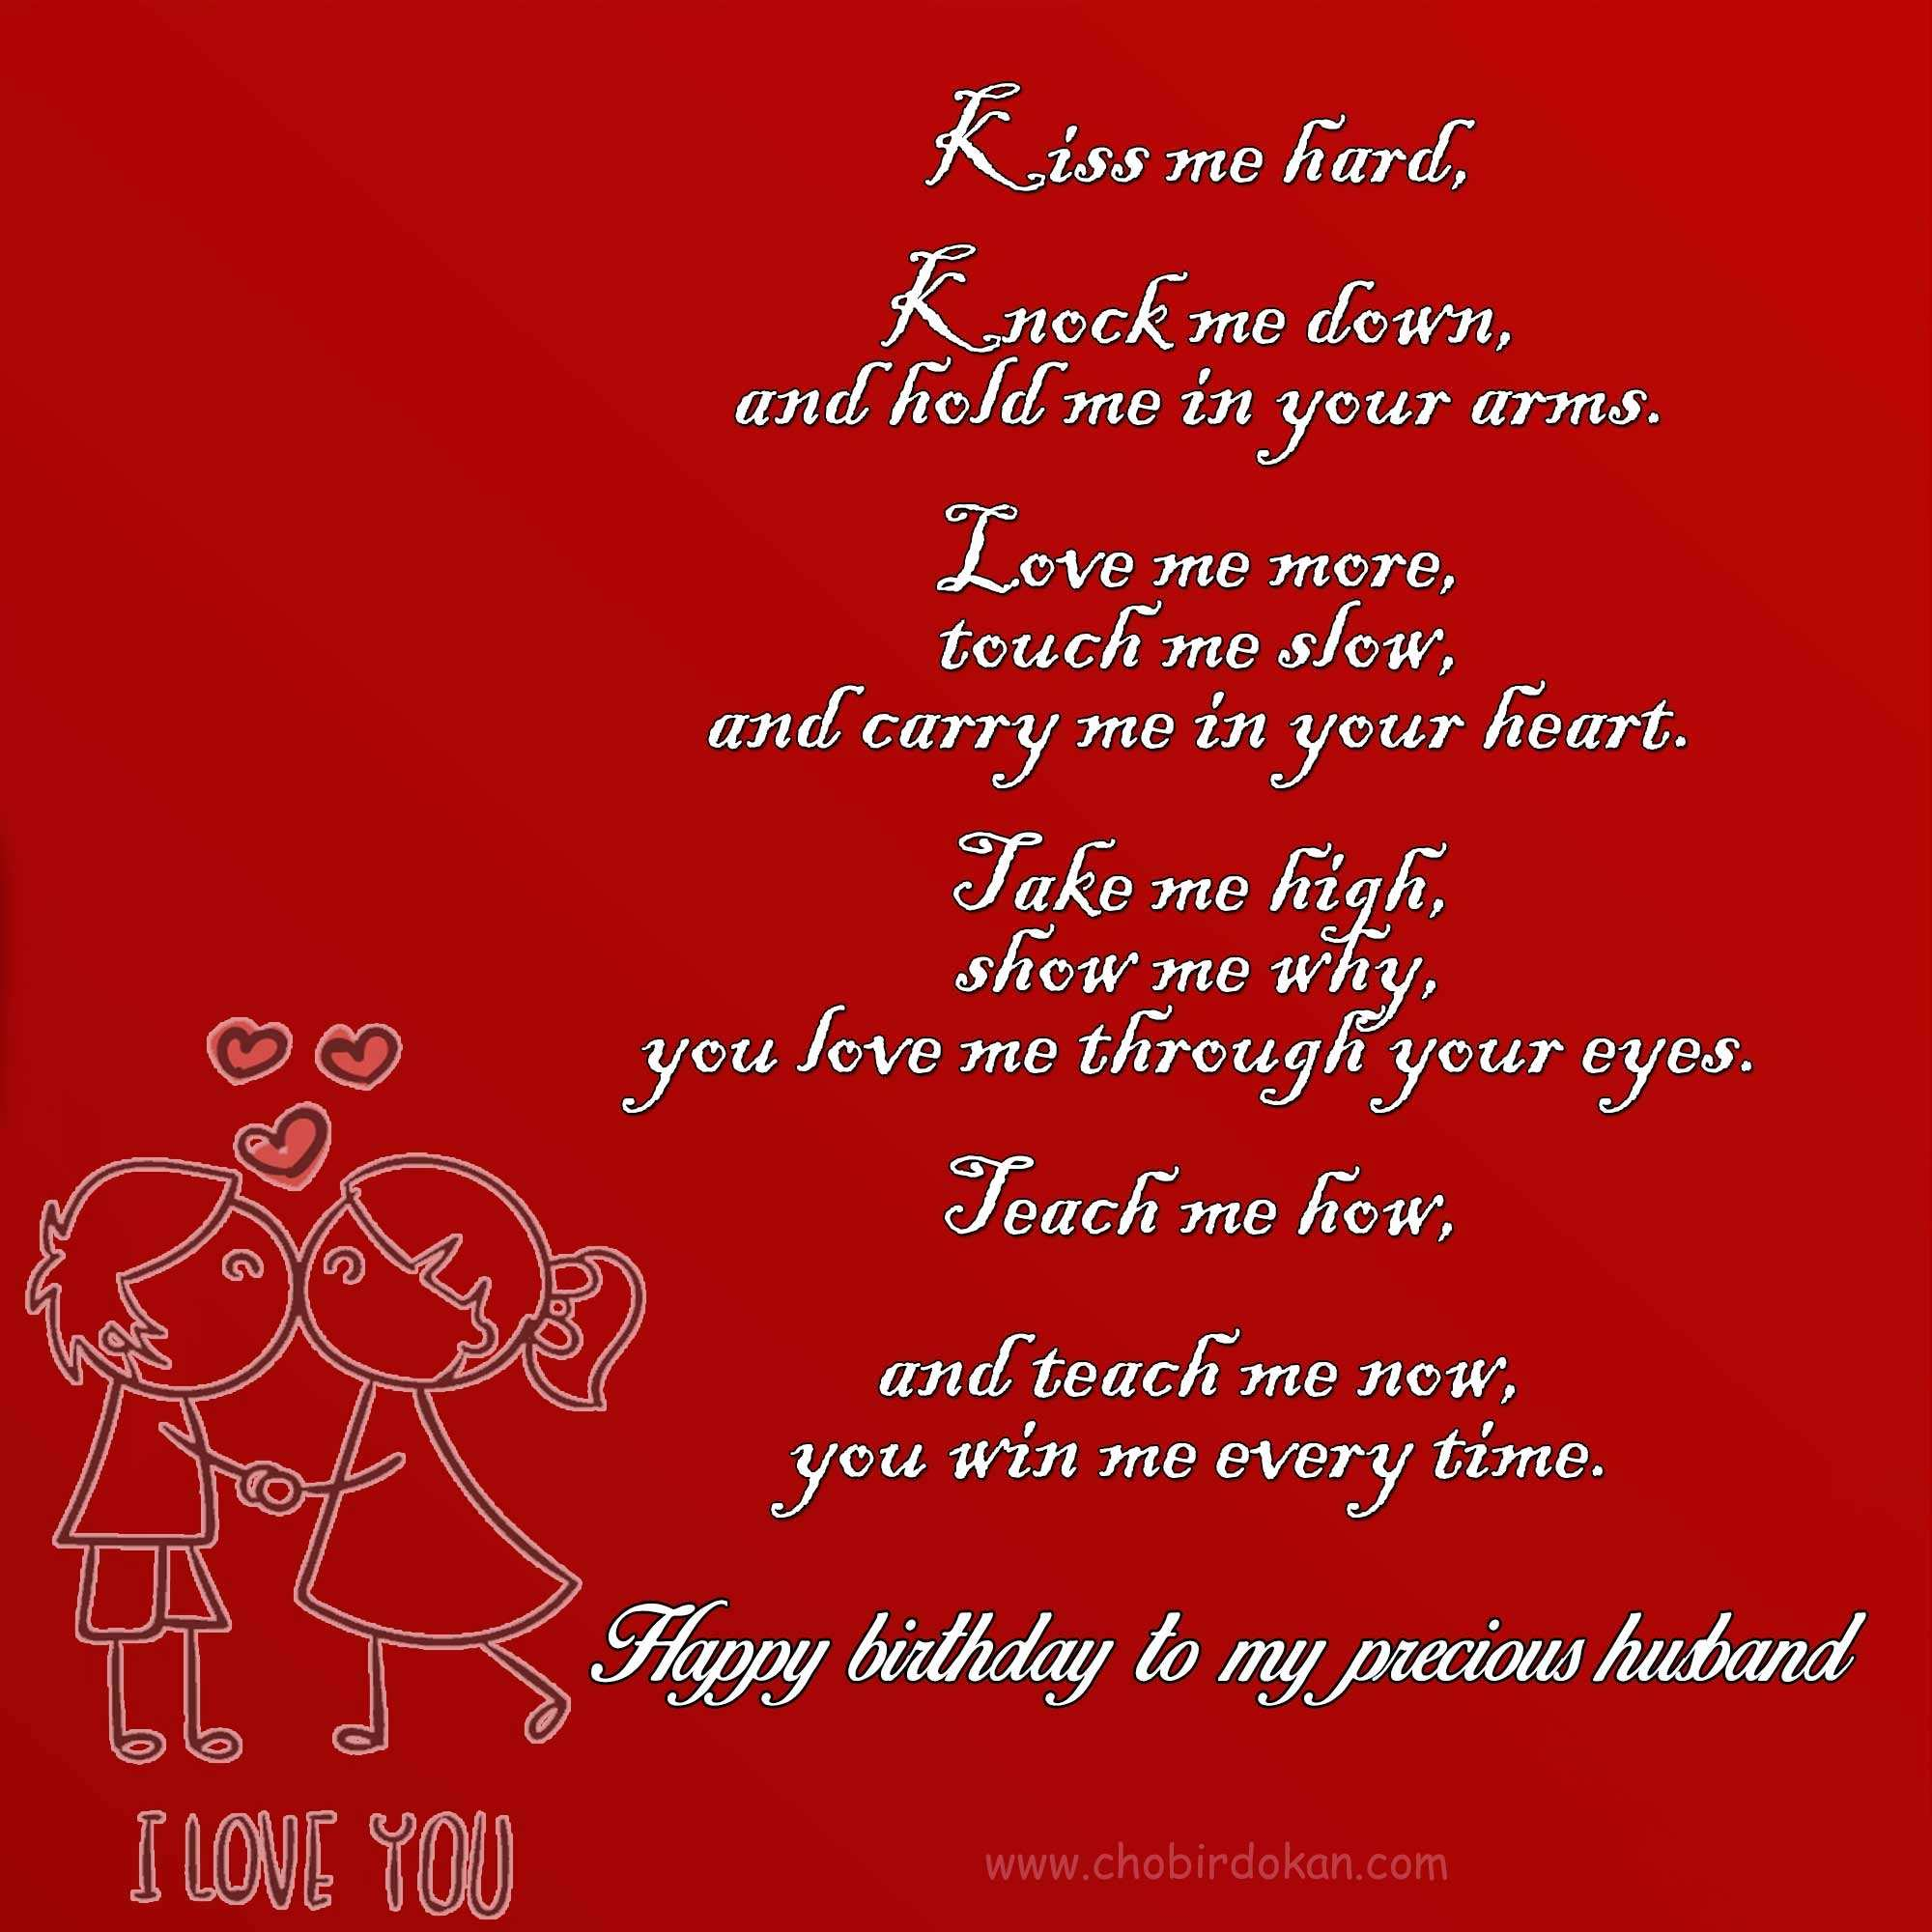 26th birthday wishes poem ; happy-birthday-wishes-to-a-best-friend-fresh-happy-birthday-poems-for-him-of-happy-birthday-wishes-to-a-best-friend